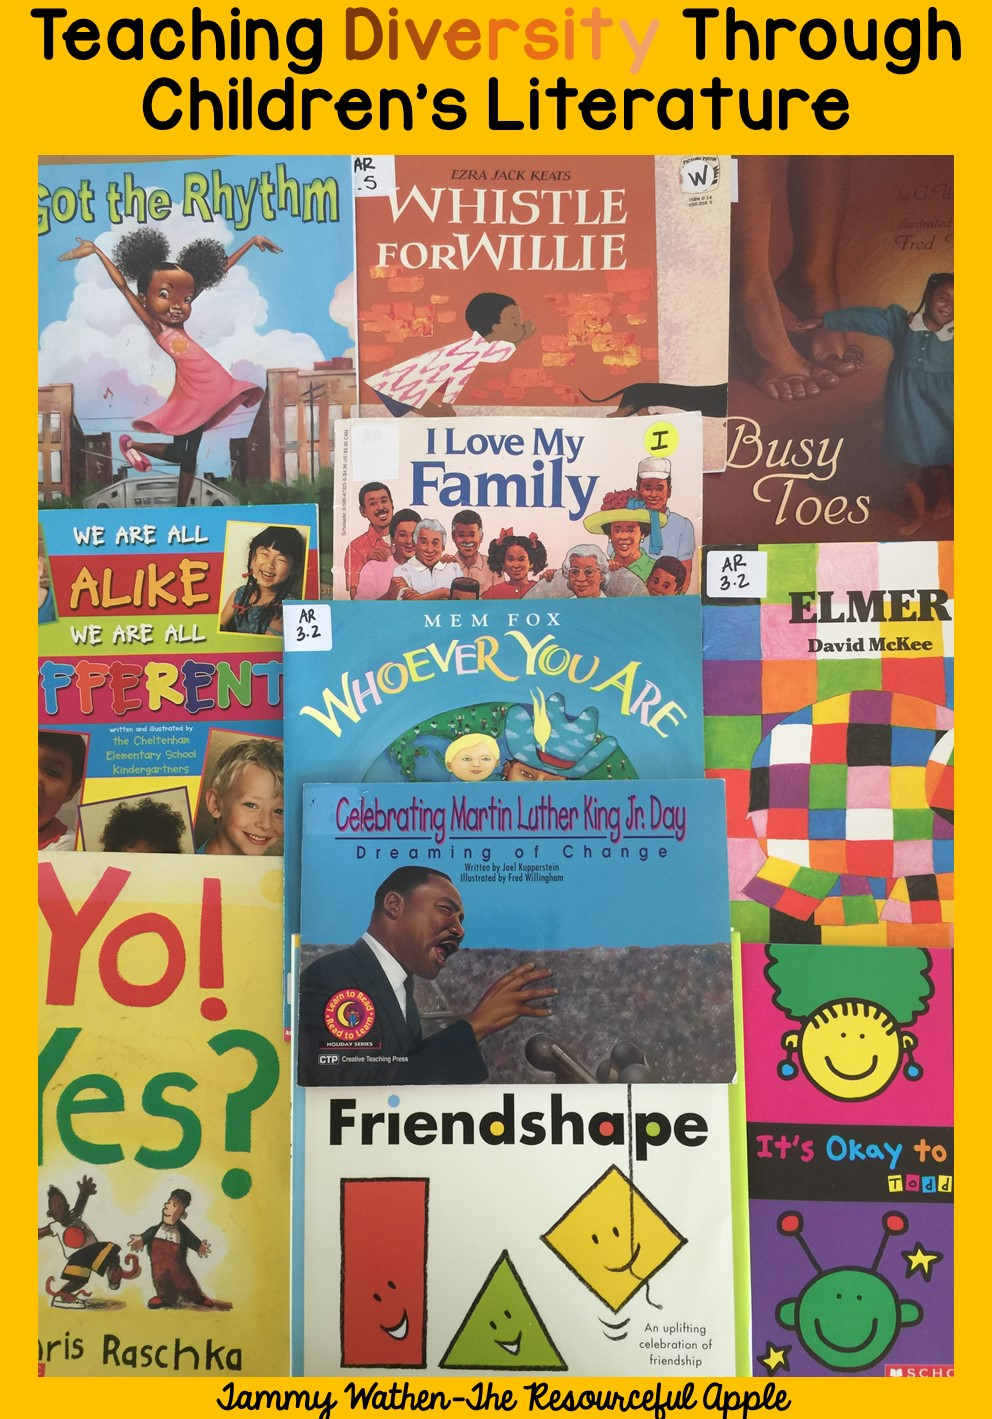 multicultural education through childrens books Young children find it easier to assimilate new information when this information is presented within the structure of a story (wells, 1986) cultural authenticity experts in multicultural education frequently emphasize the importance of using literature to increase cultural awareness (piper, 1986 tway, 1989.